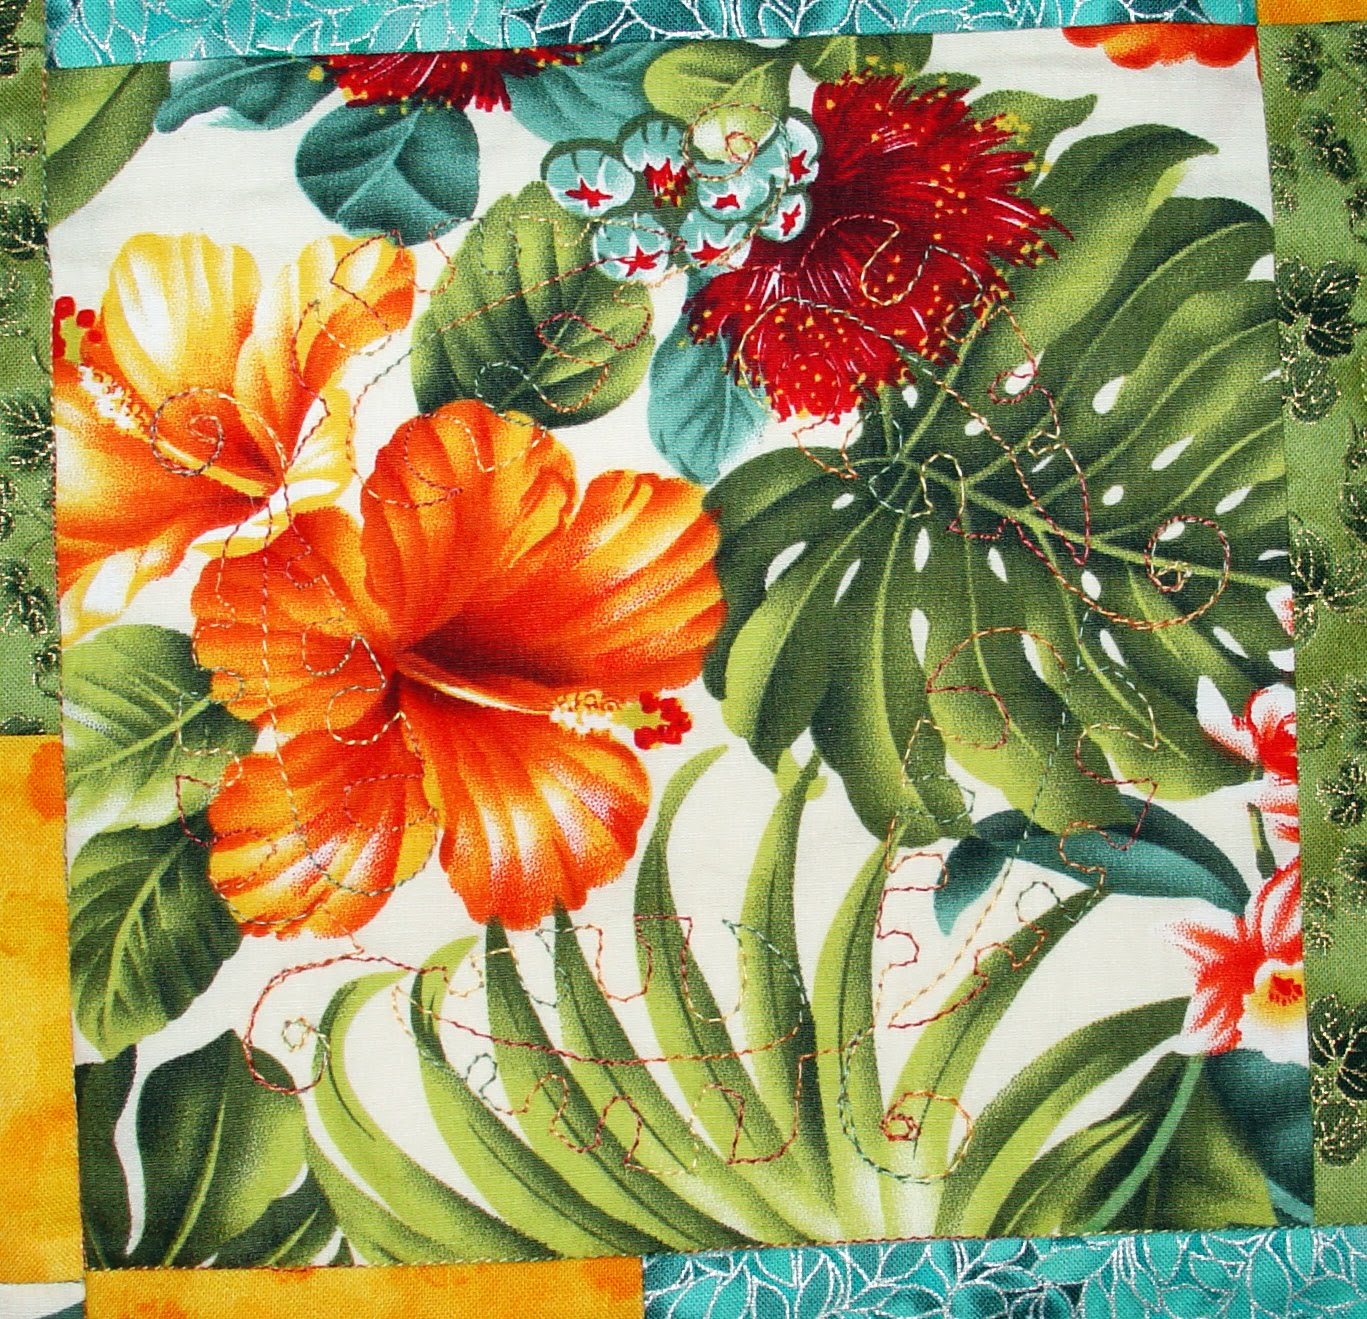 Hawaiian Leaf Border In the border which is the